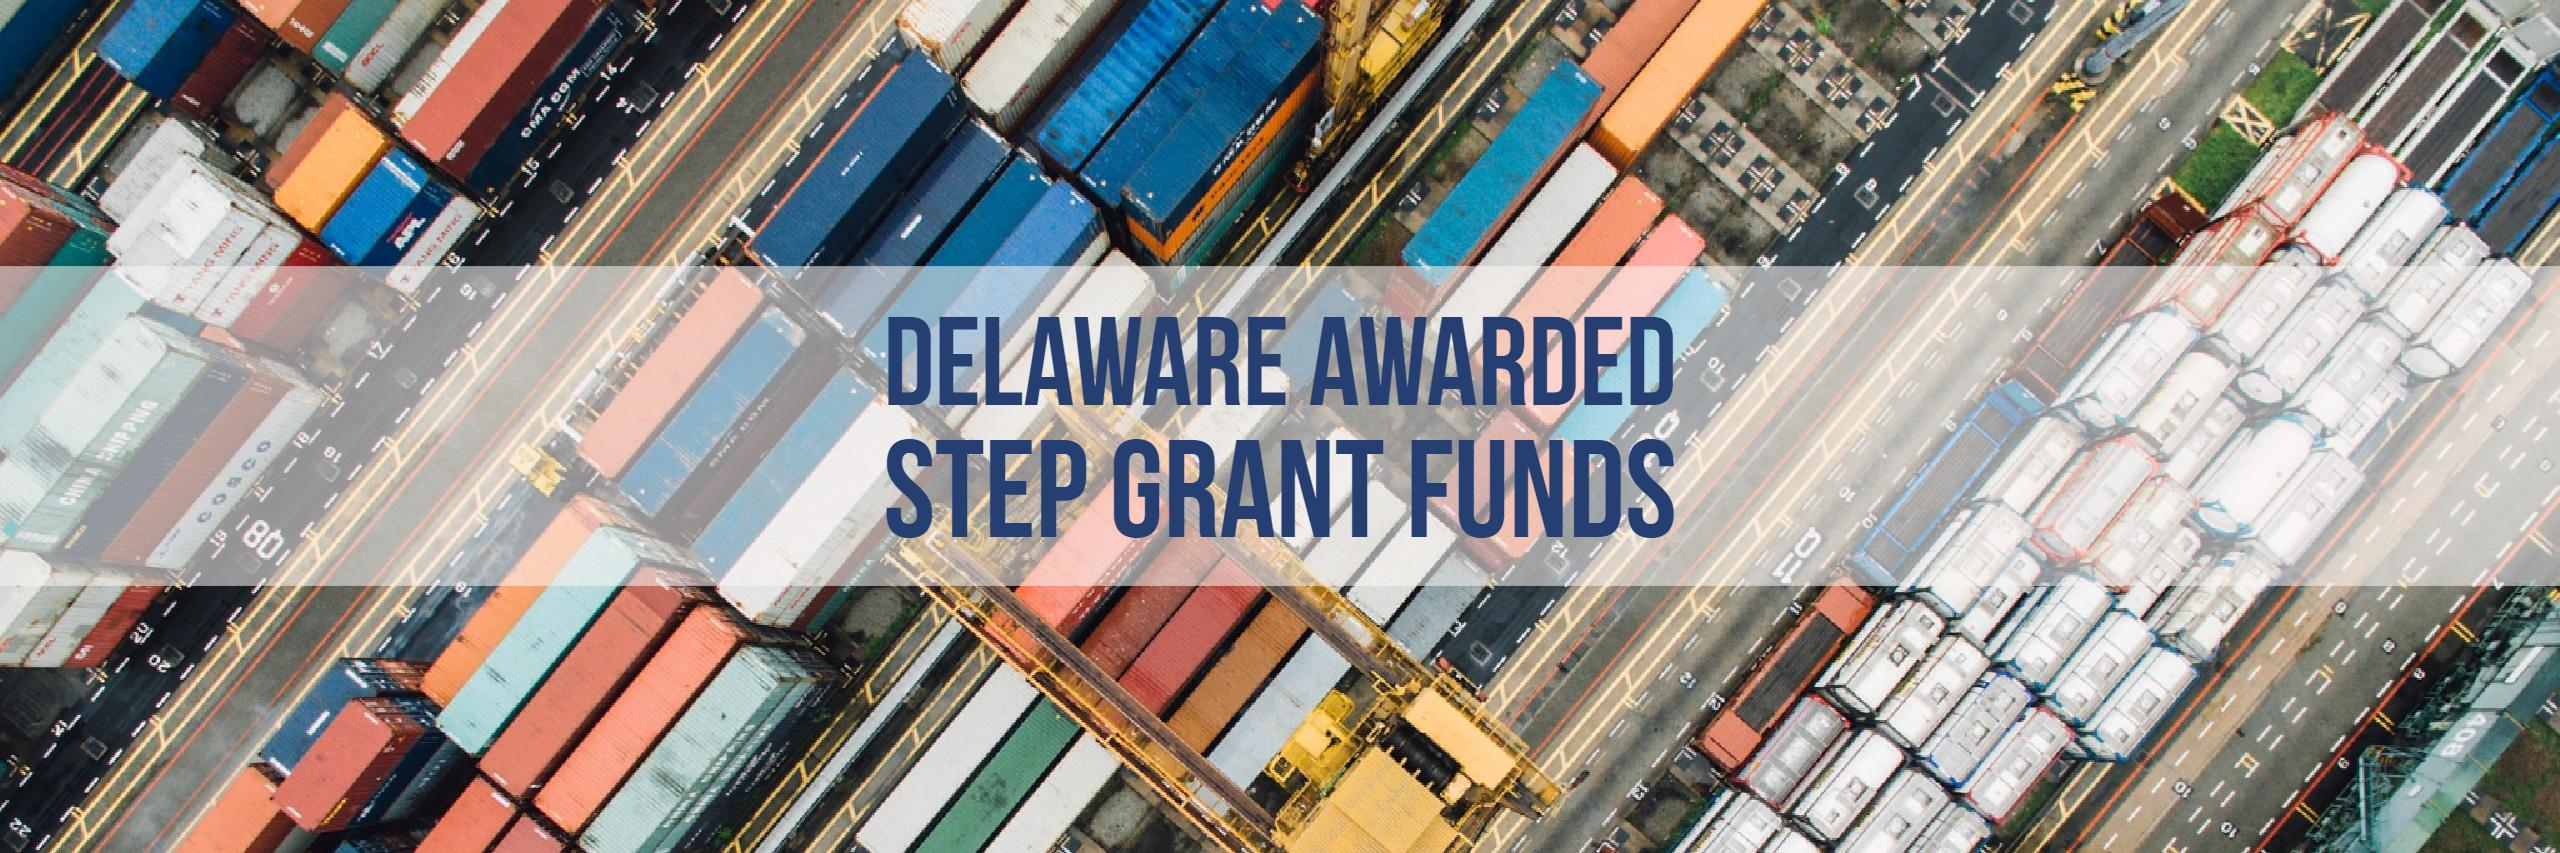 Delaware Awarded STEP Grant Funds